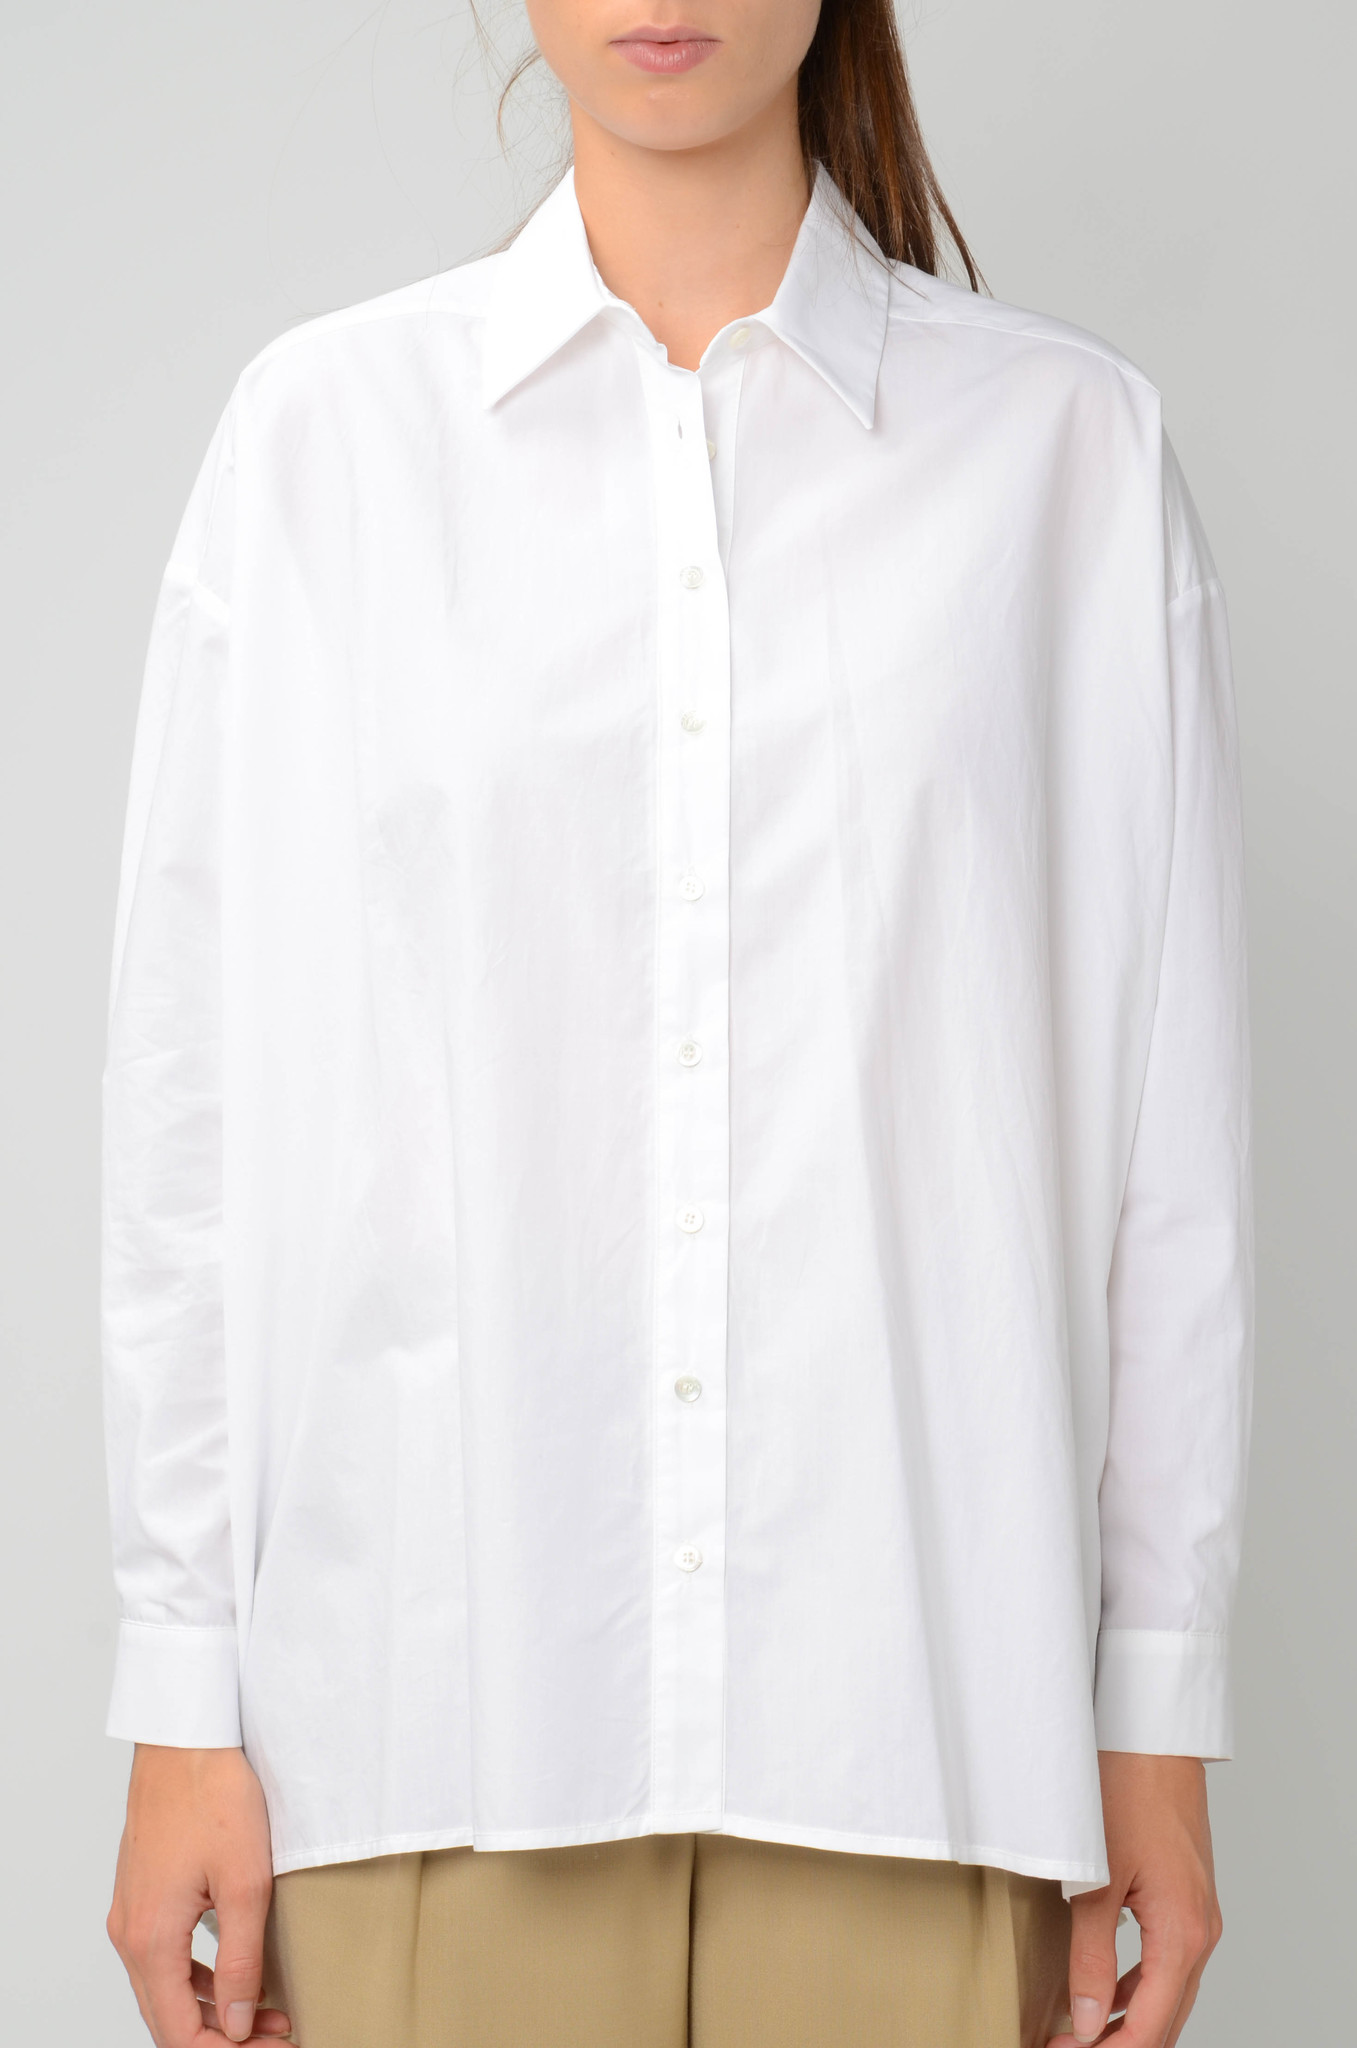 ESSENTIAL SHIRT IN WHITE-1